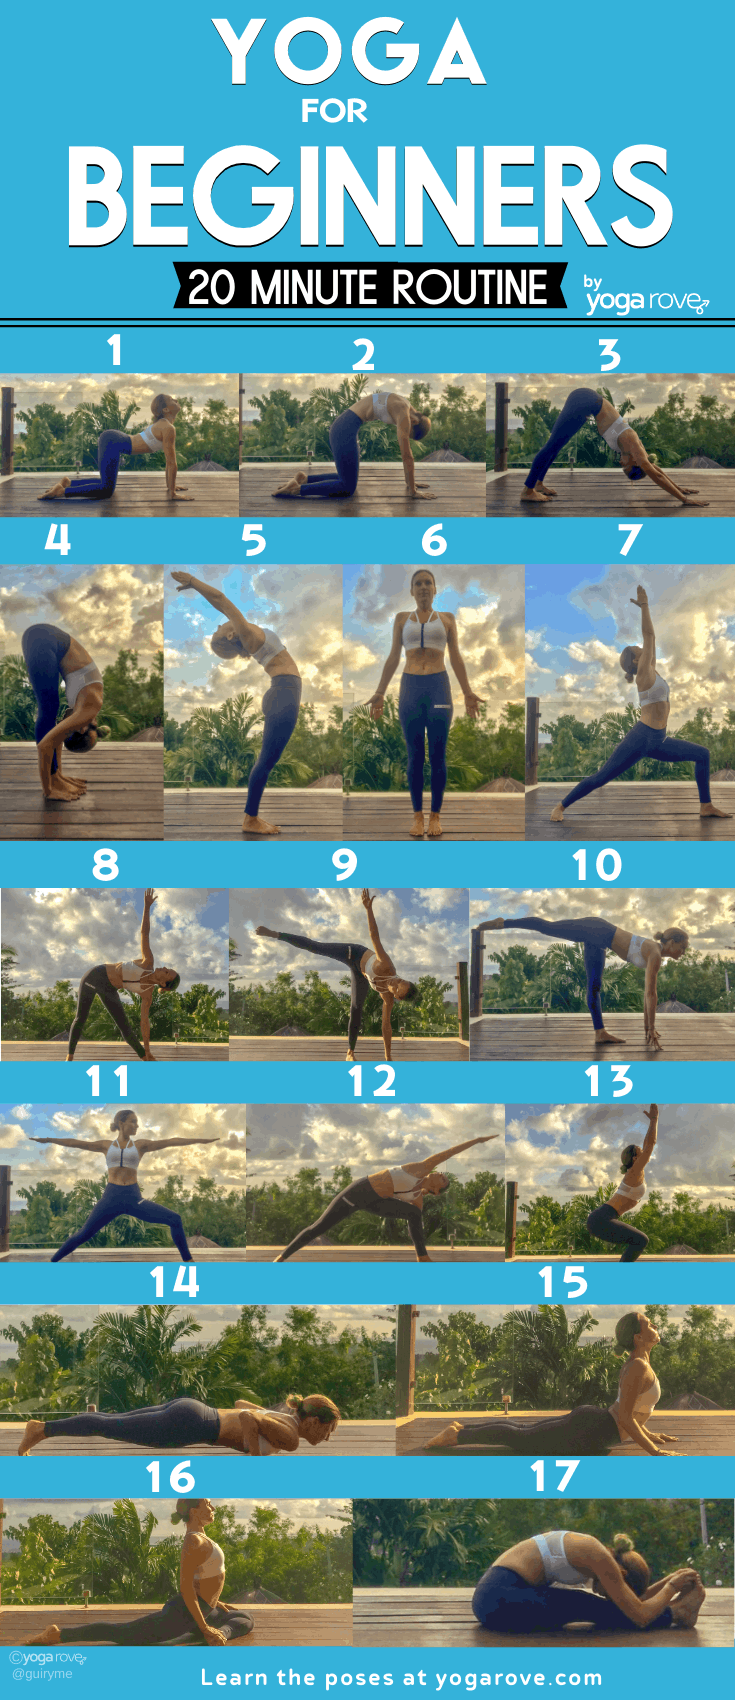 20 Minute Yoga Routine for Beginners Infographic